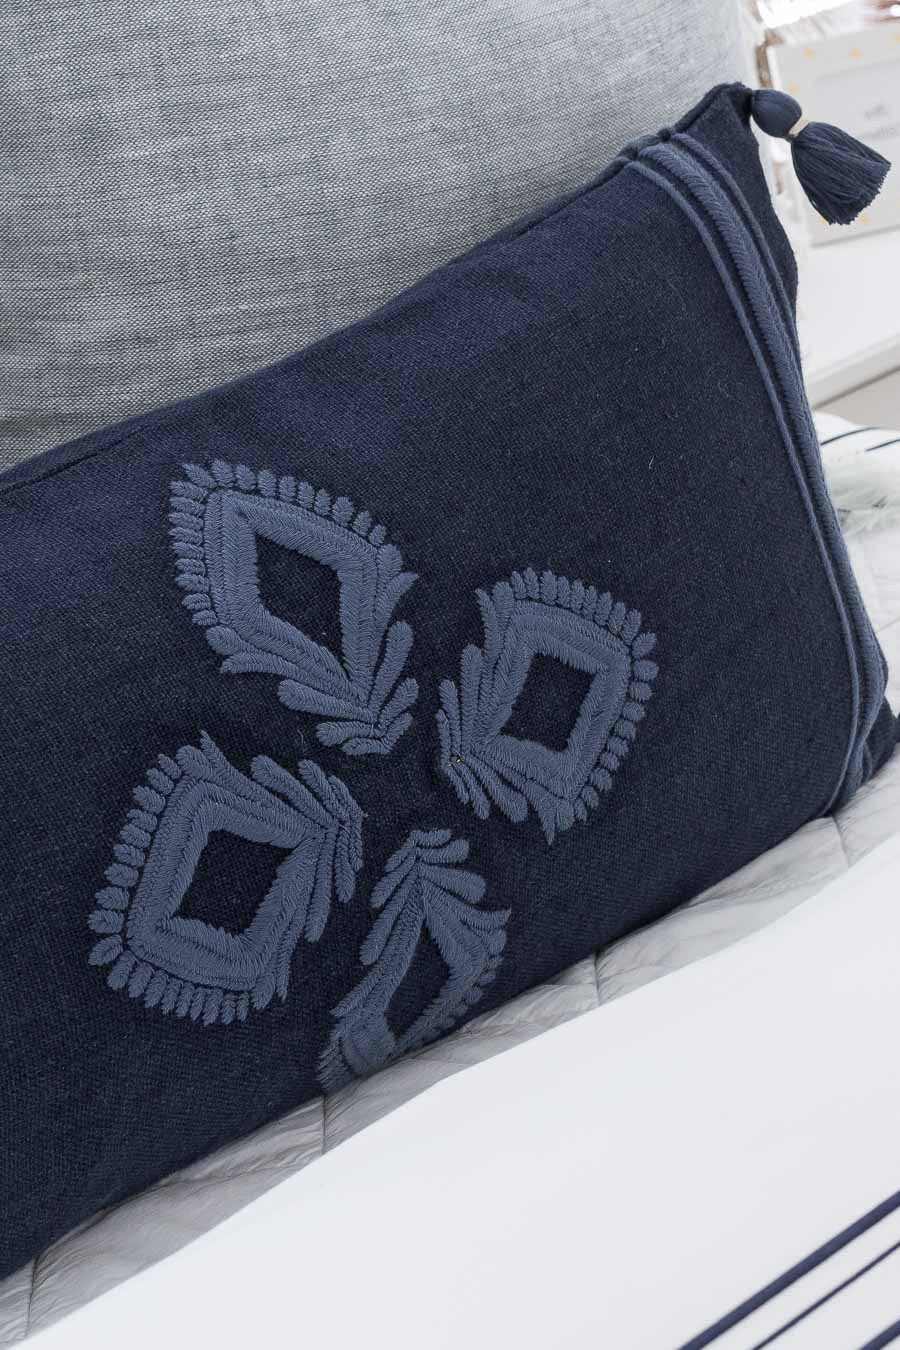 Gorgeous embroidered navy pillow - perfect for the front pillow on a bed!